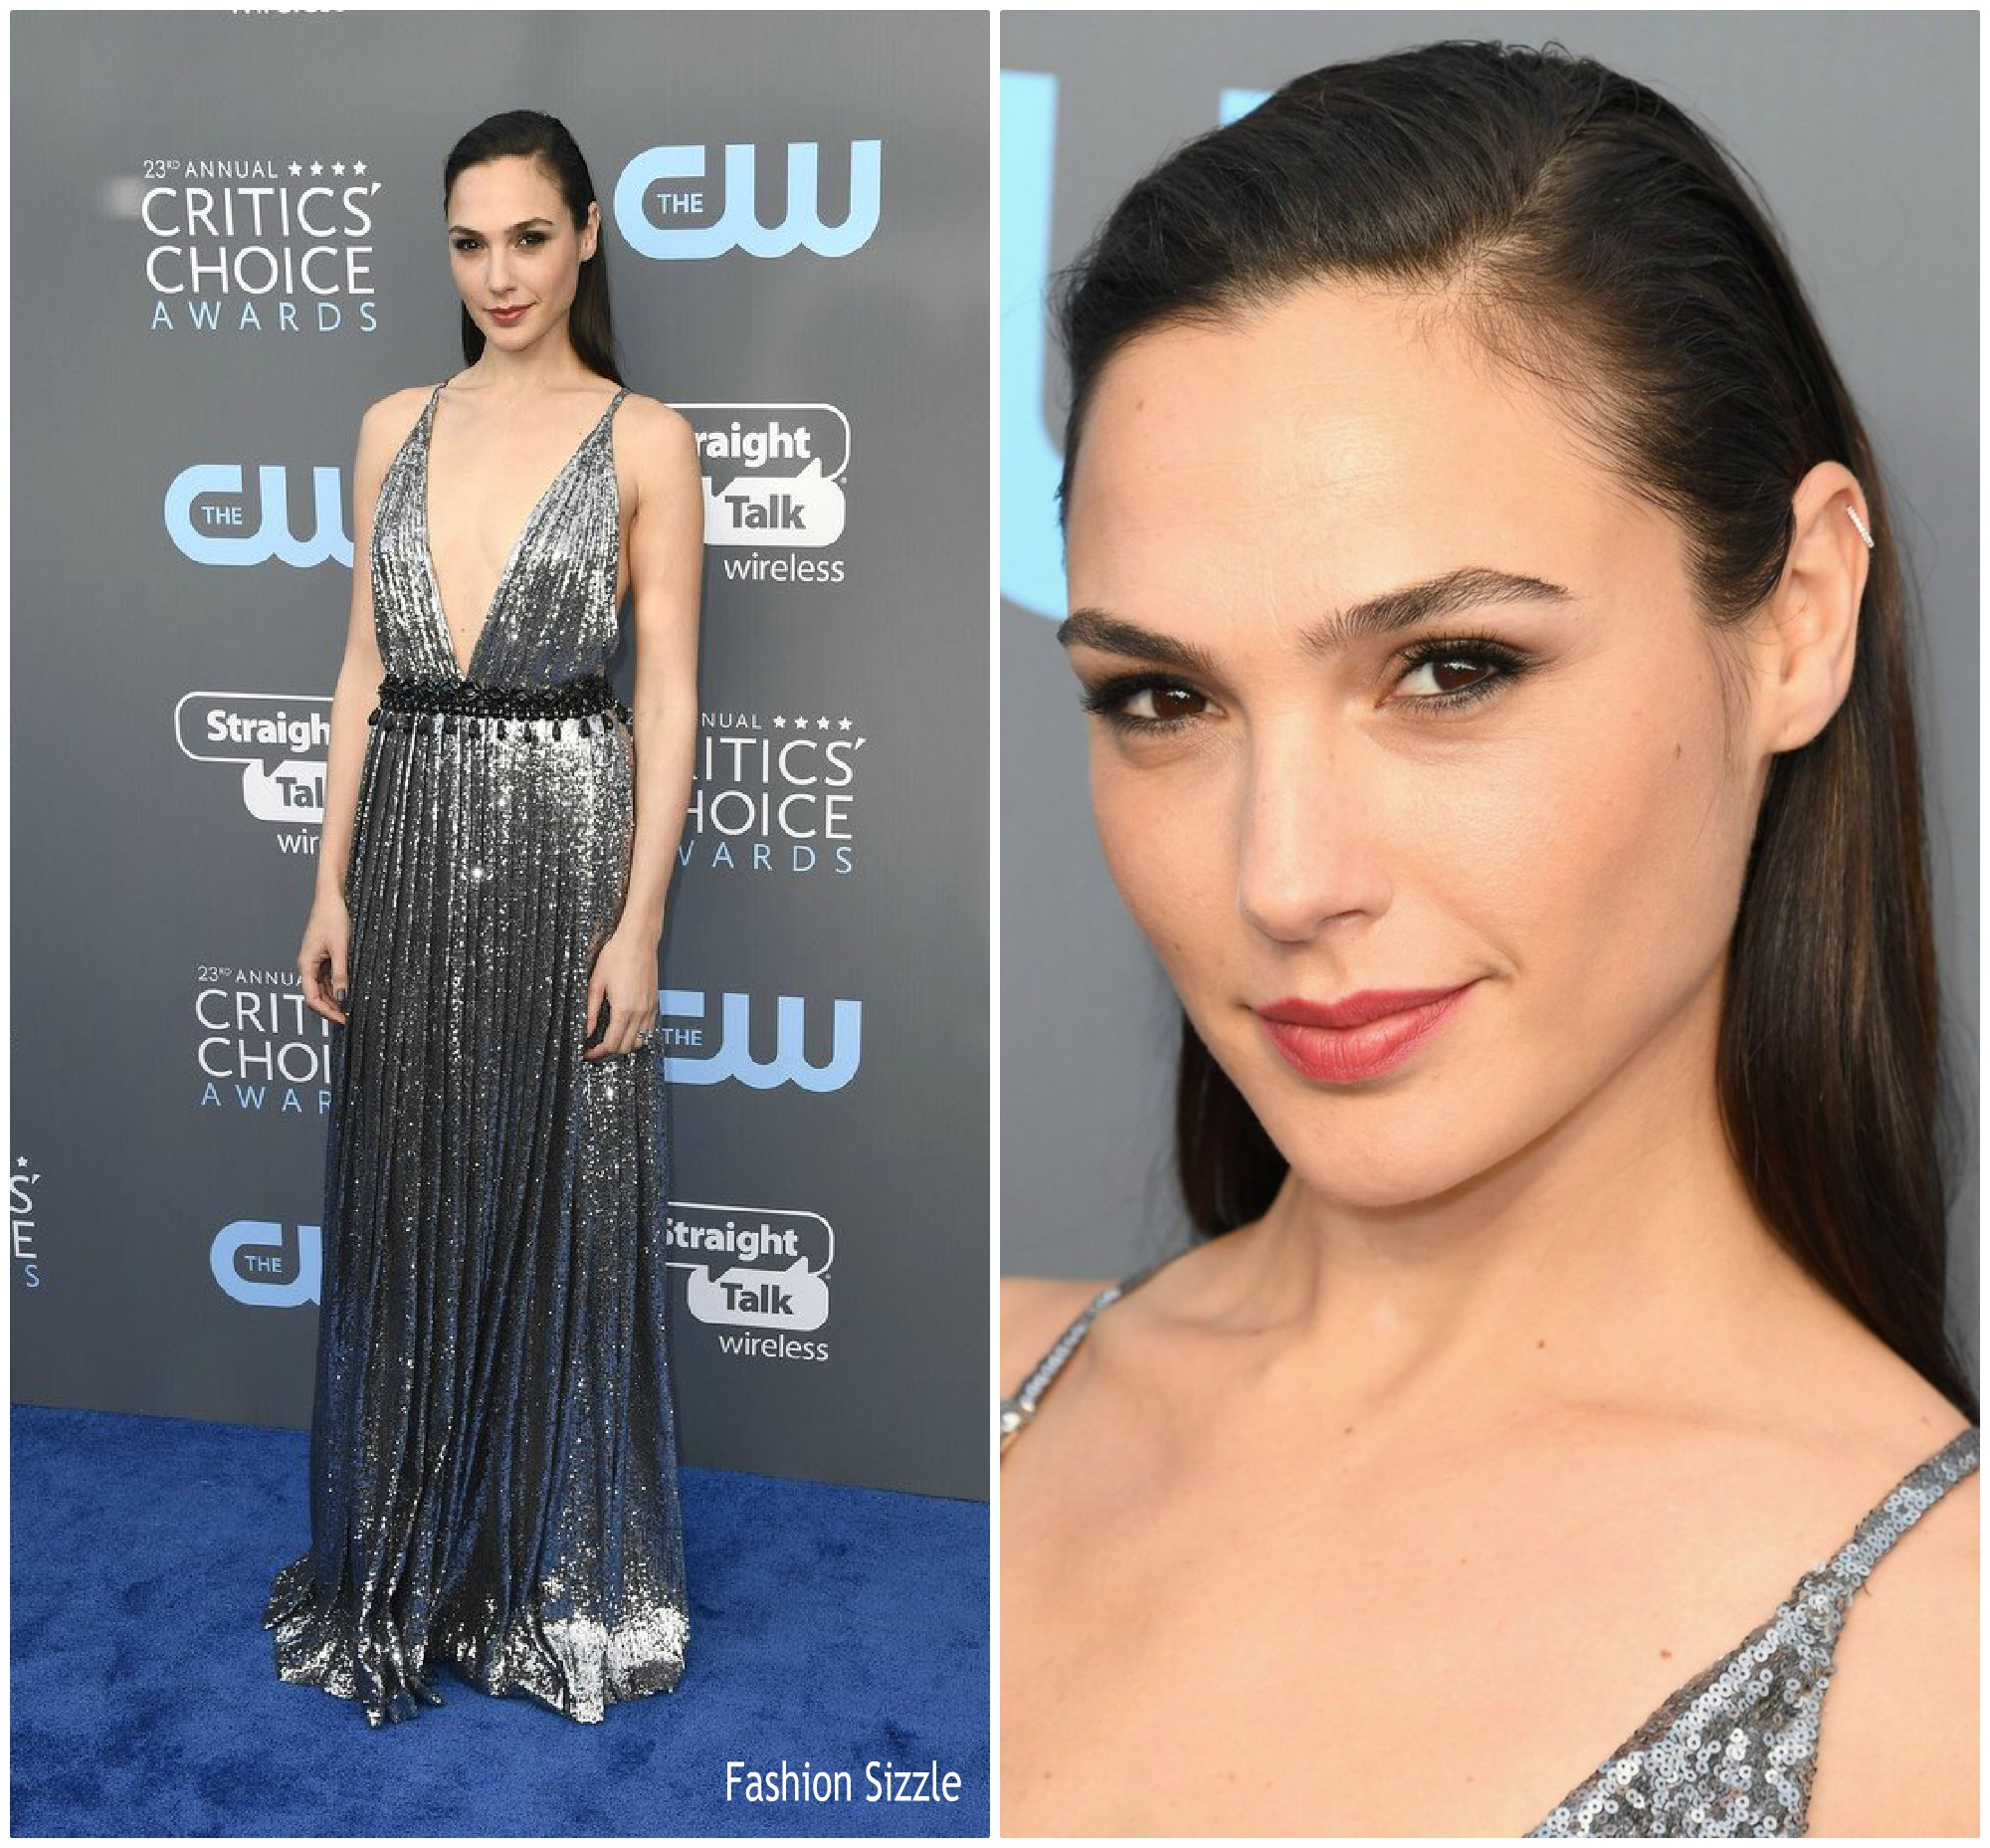 gal-gadot-in-prada-2018-crtics-choice-awards